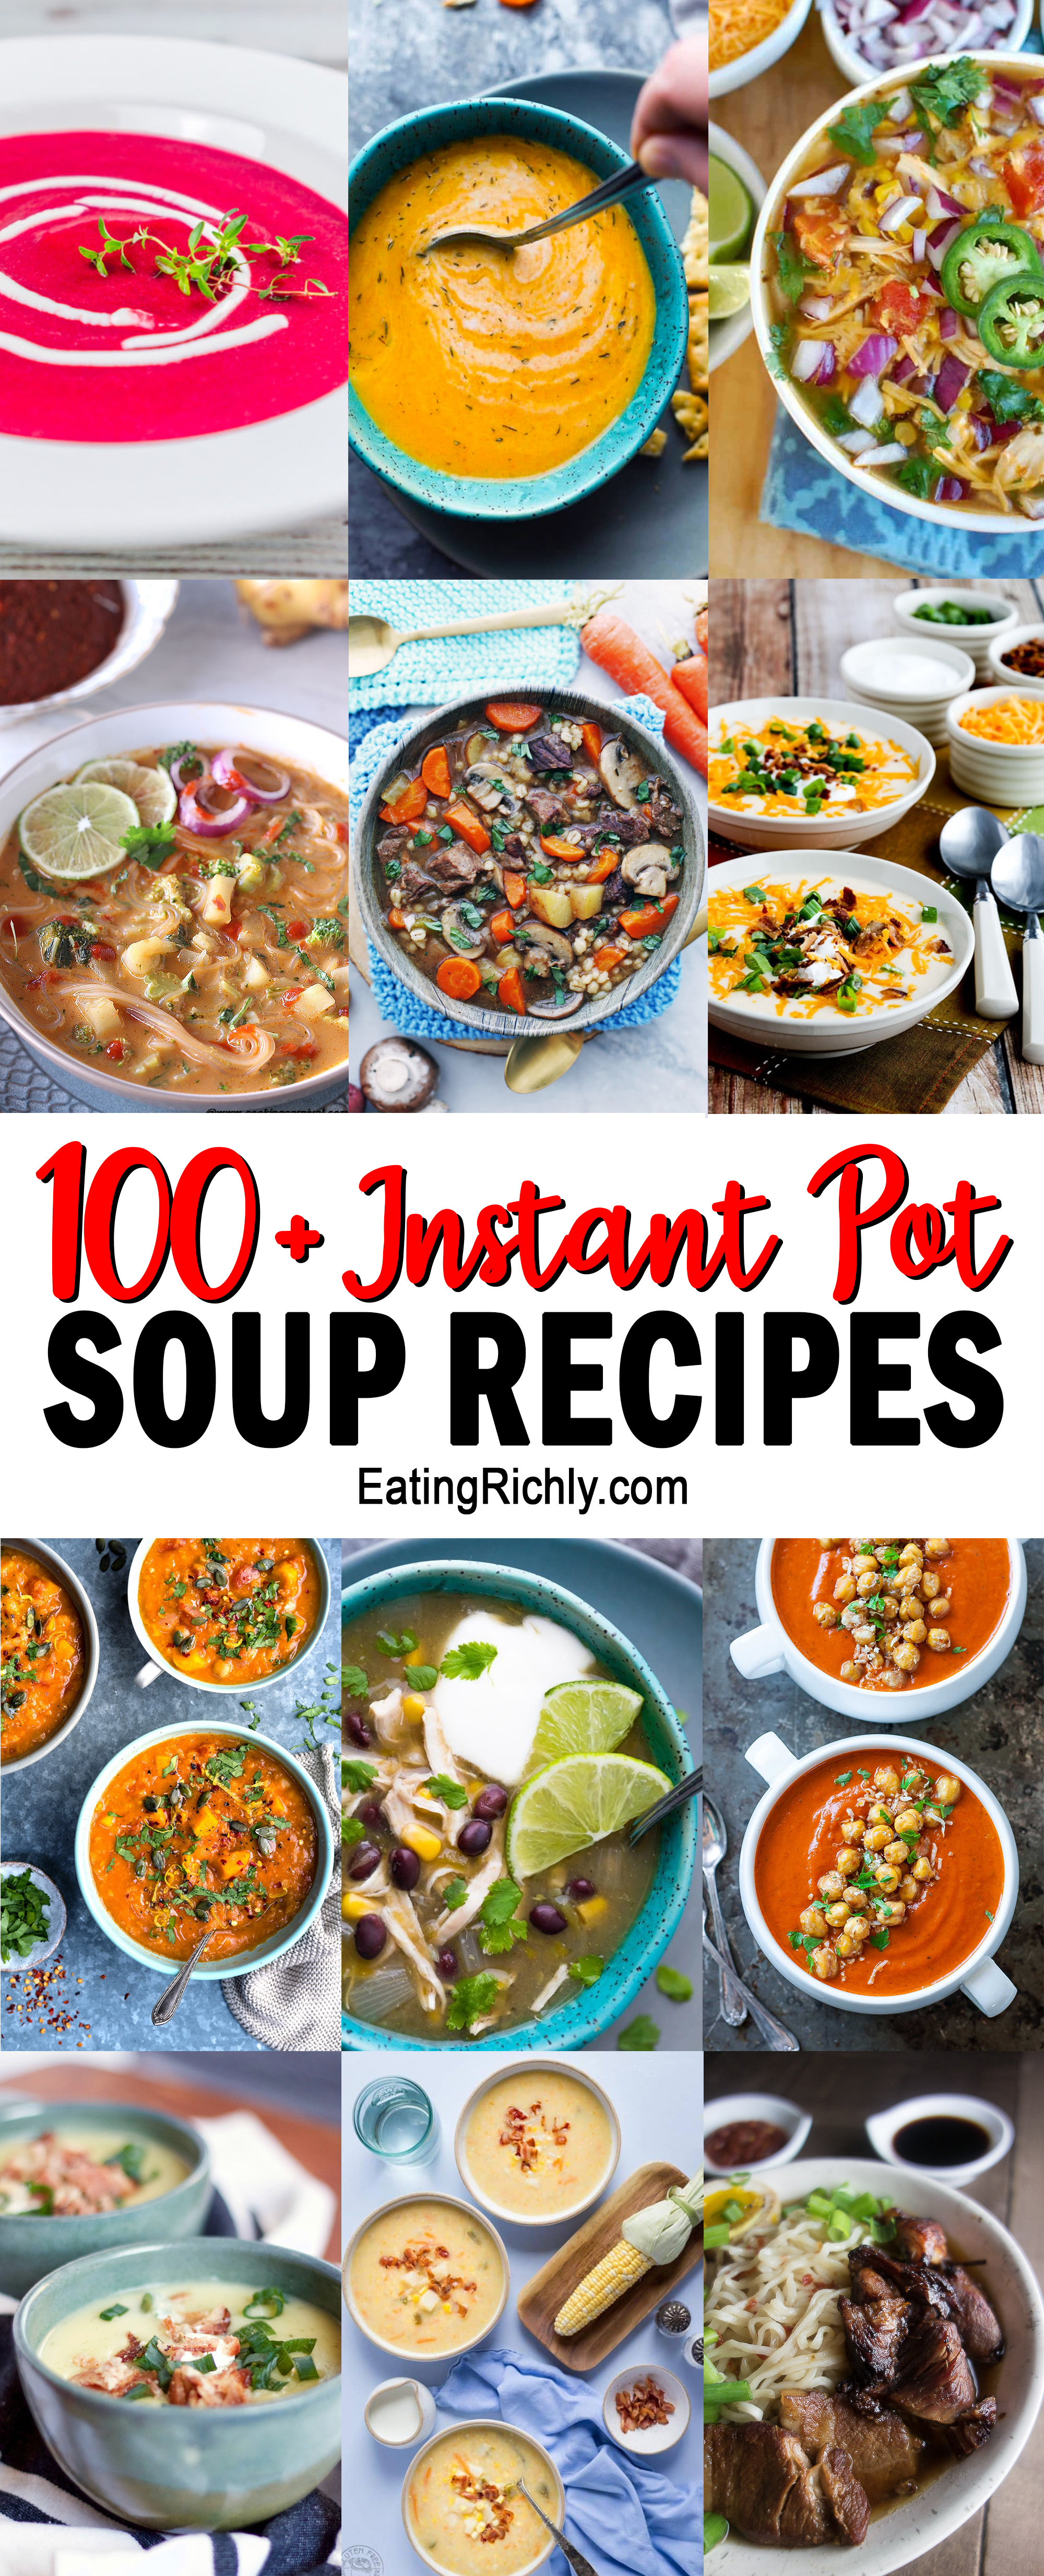 We've gathered over 100 of the best Instant Pot soup recipes and divided them by dietary needs. You won't believe how easy these soups are to make! Includes dairy free, vegan, vegetarian, gluten free, paleo, low carb, and more!